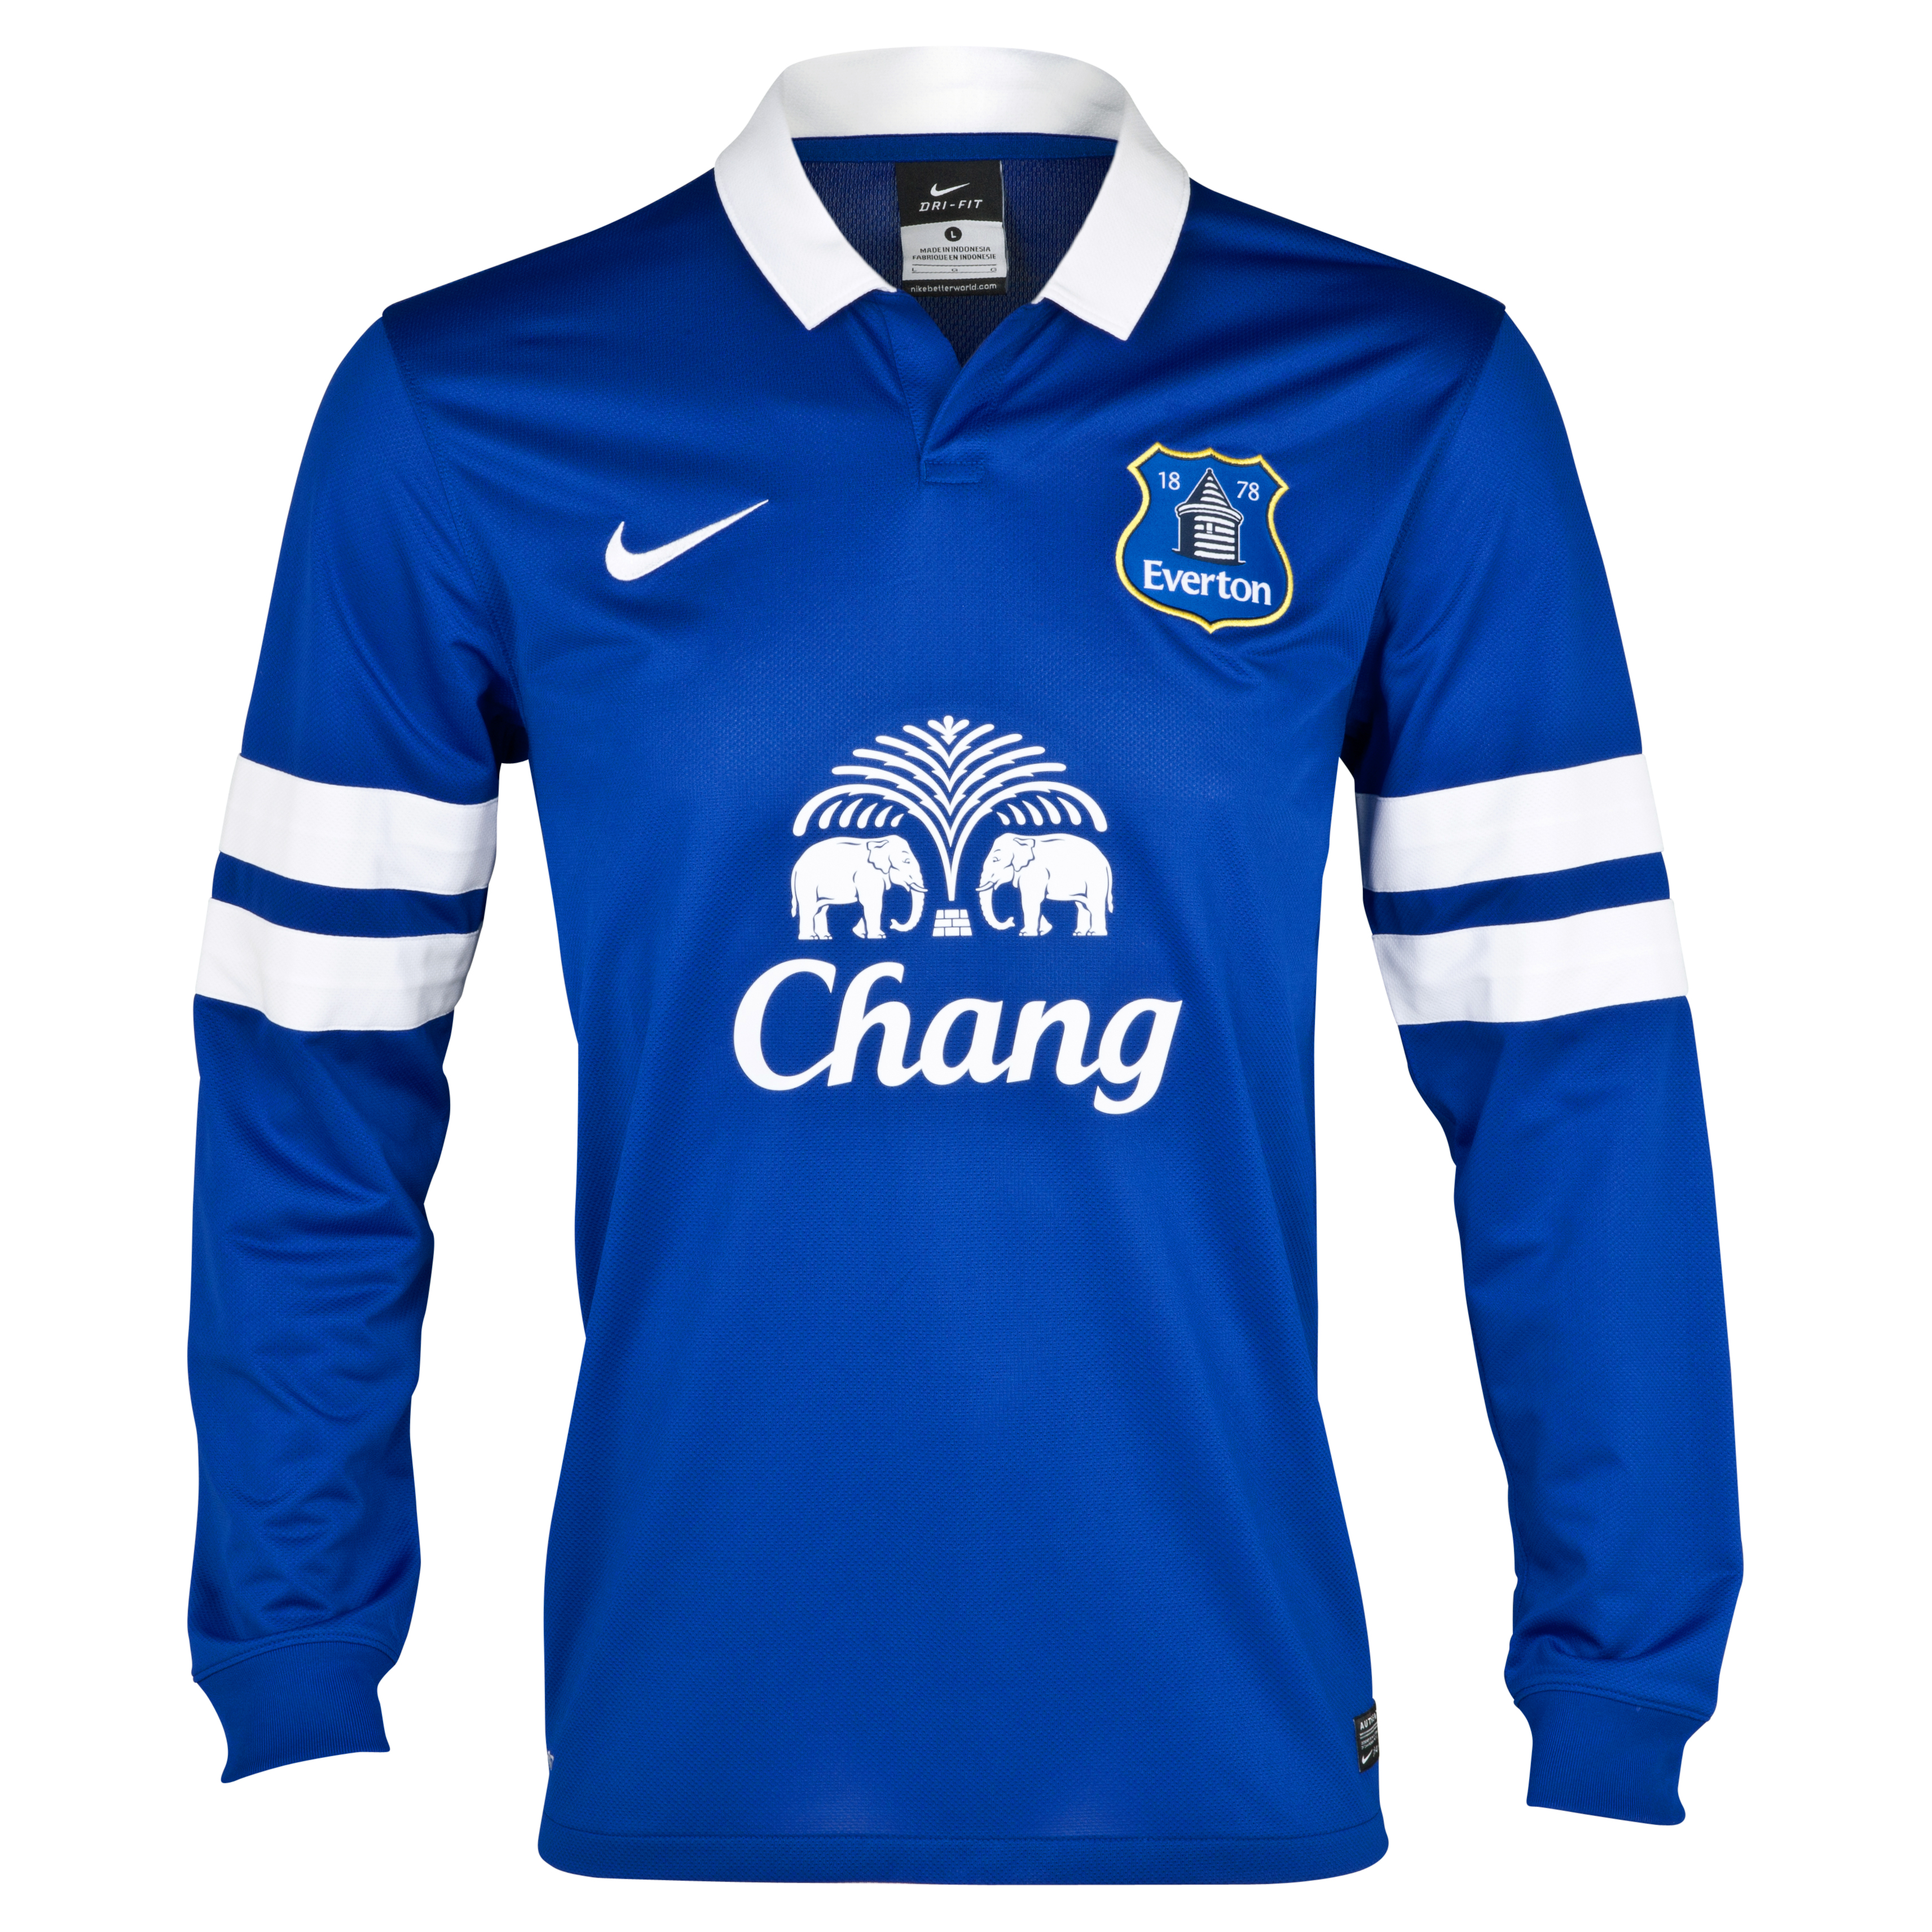 Everton Home Shirt 2013/14 - Long Sleeved Blue